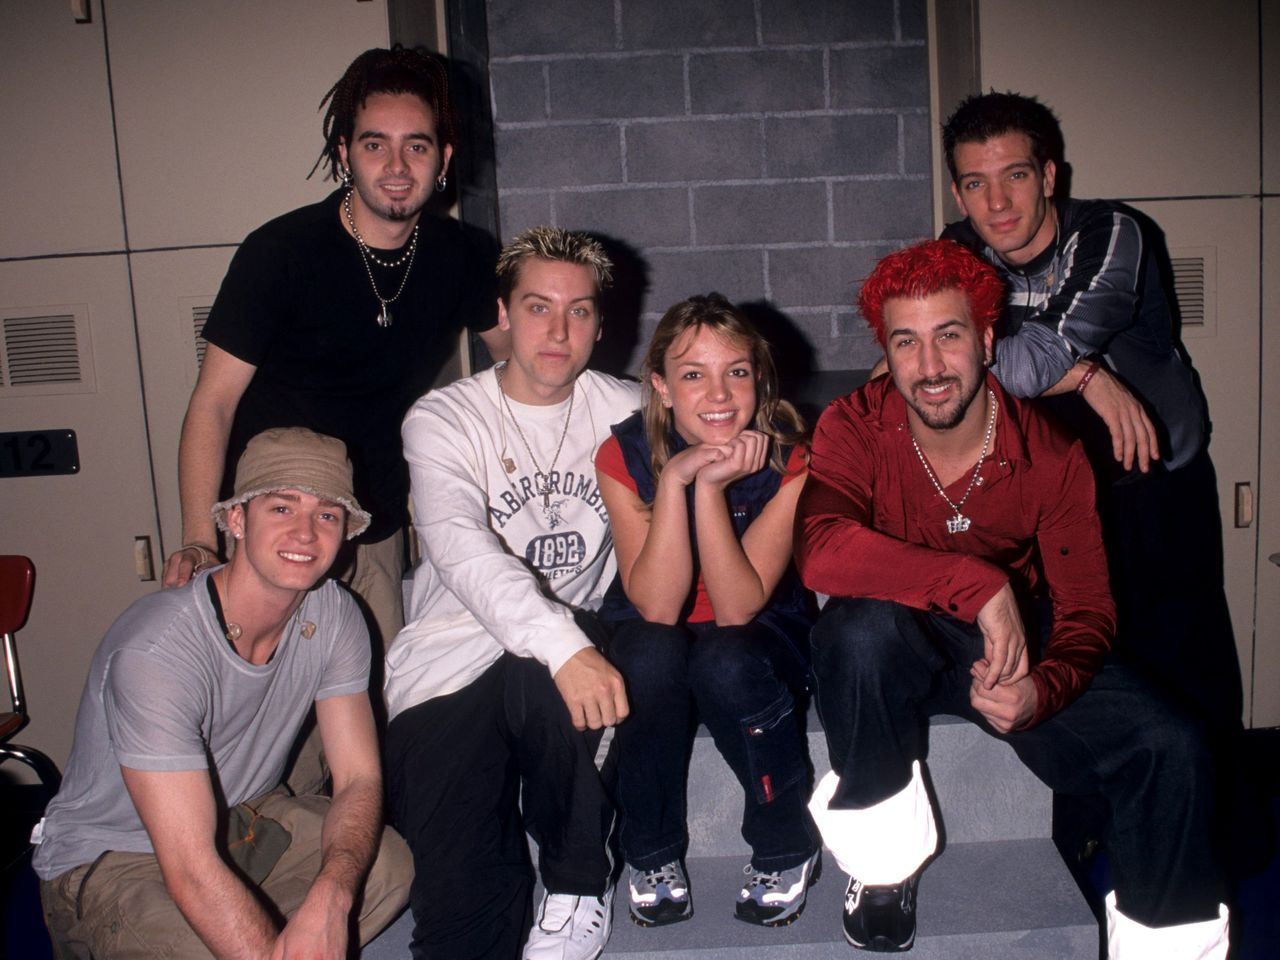 Britney poses with the guys of *NSYNC at the 1999 MTV Video Music Awards rehearsals.